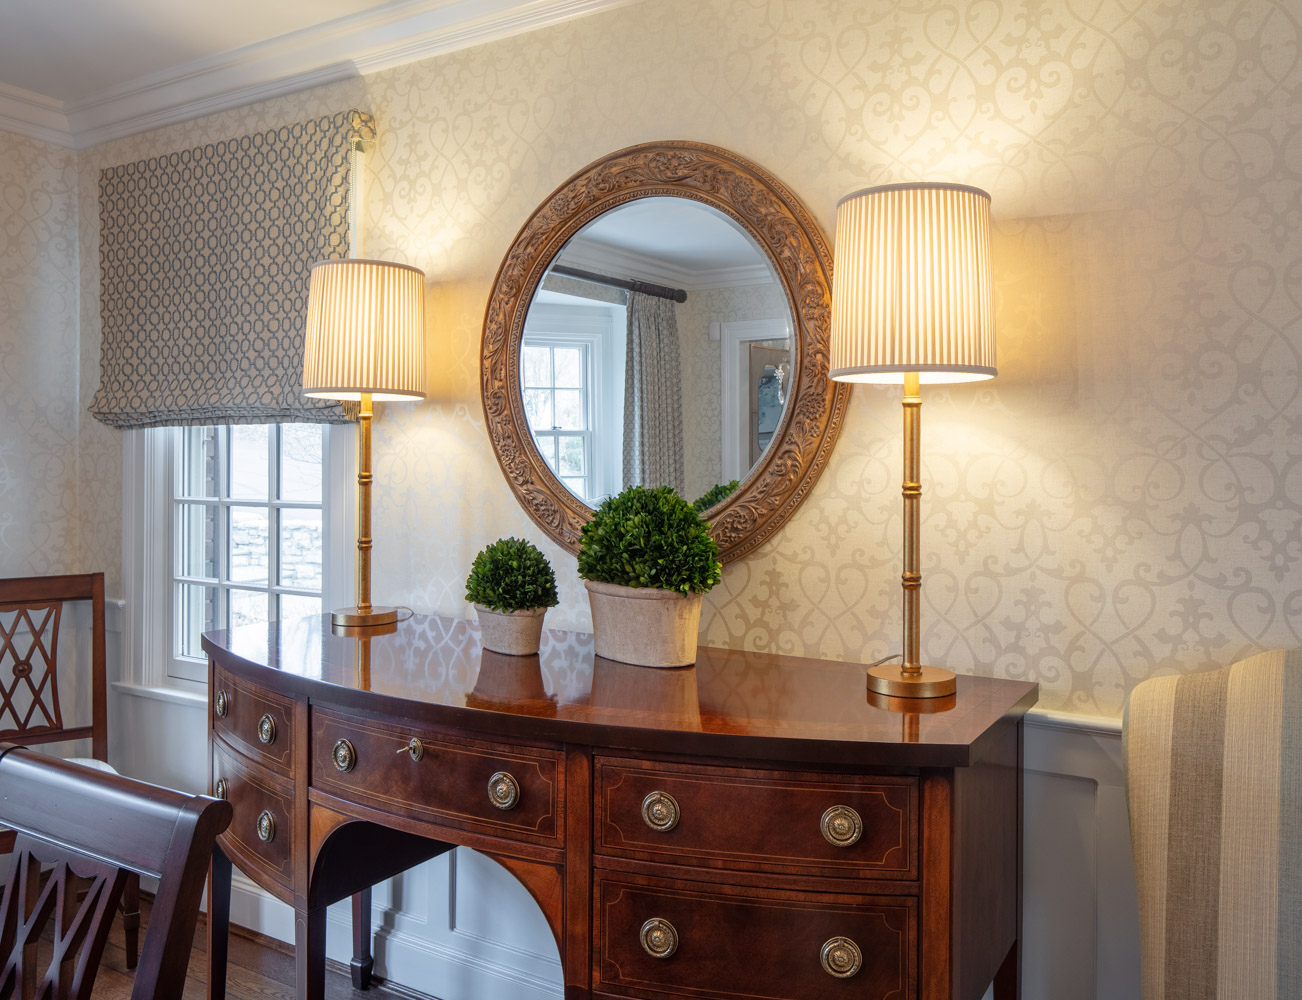 Wooden cabinet, table lamp and a round mirror on the wall